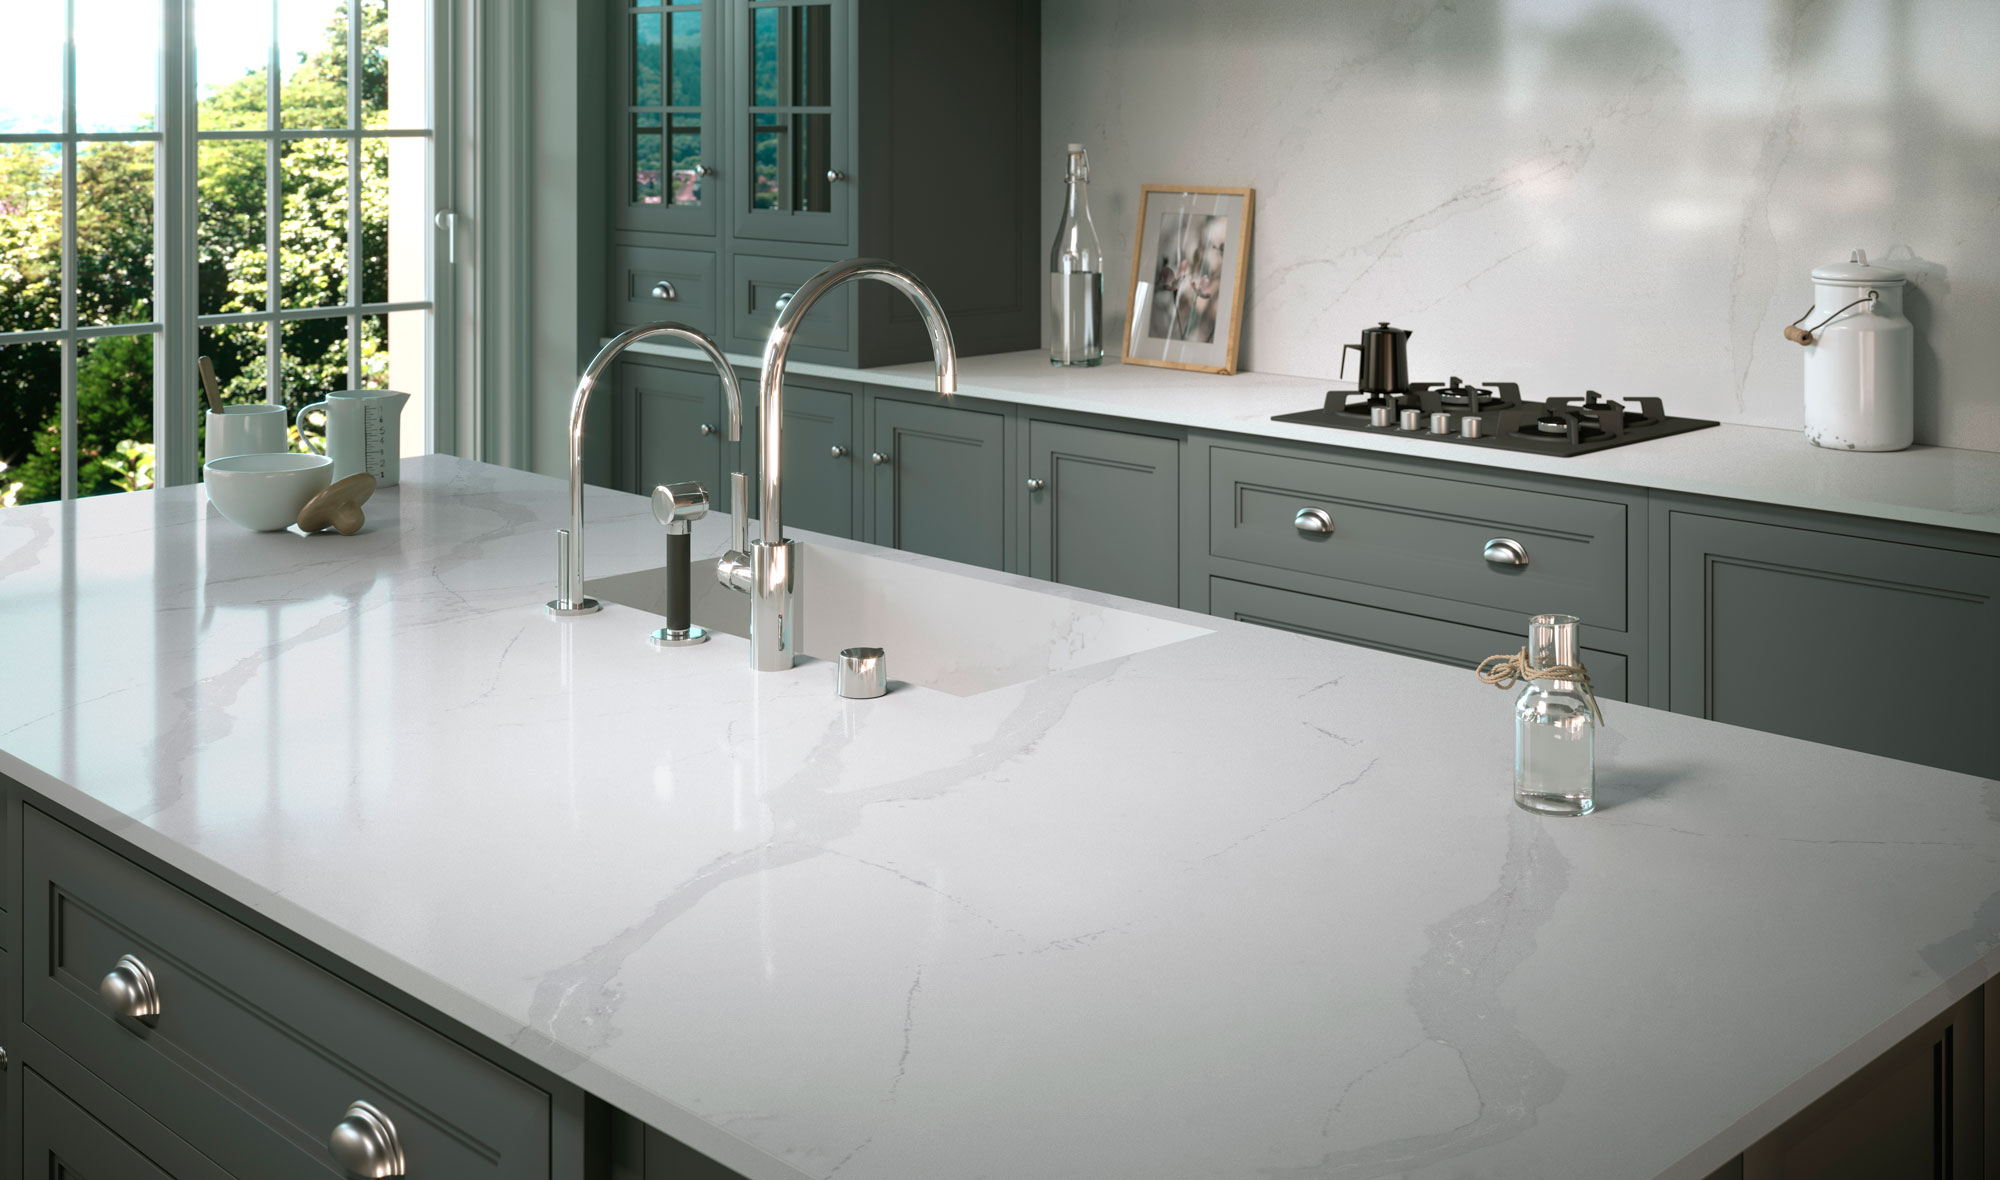 silestone bathroom countertops. Bianco Calacatta Silestone Bathroom Countertops B